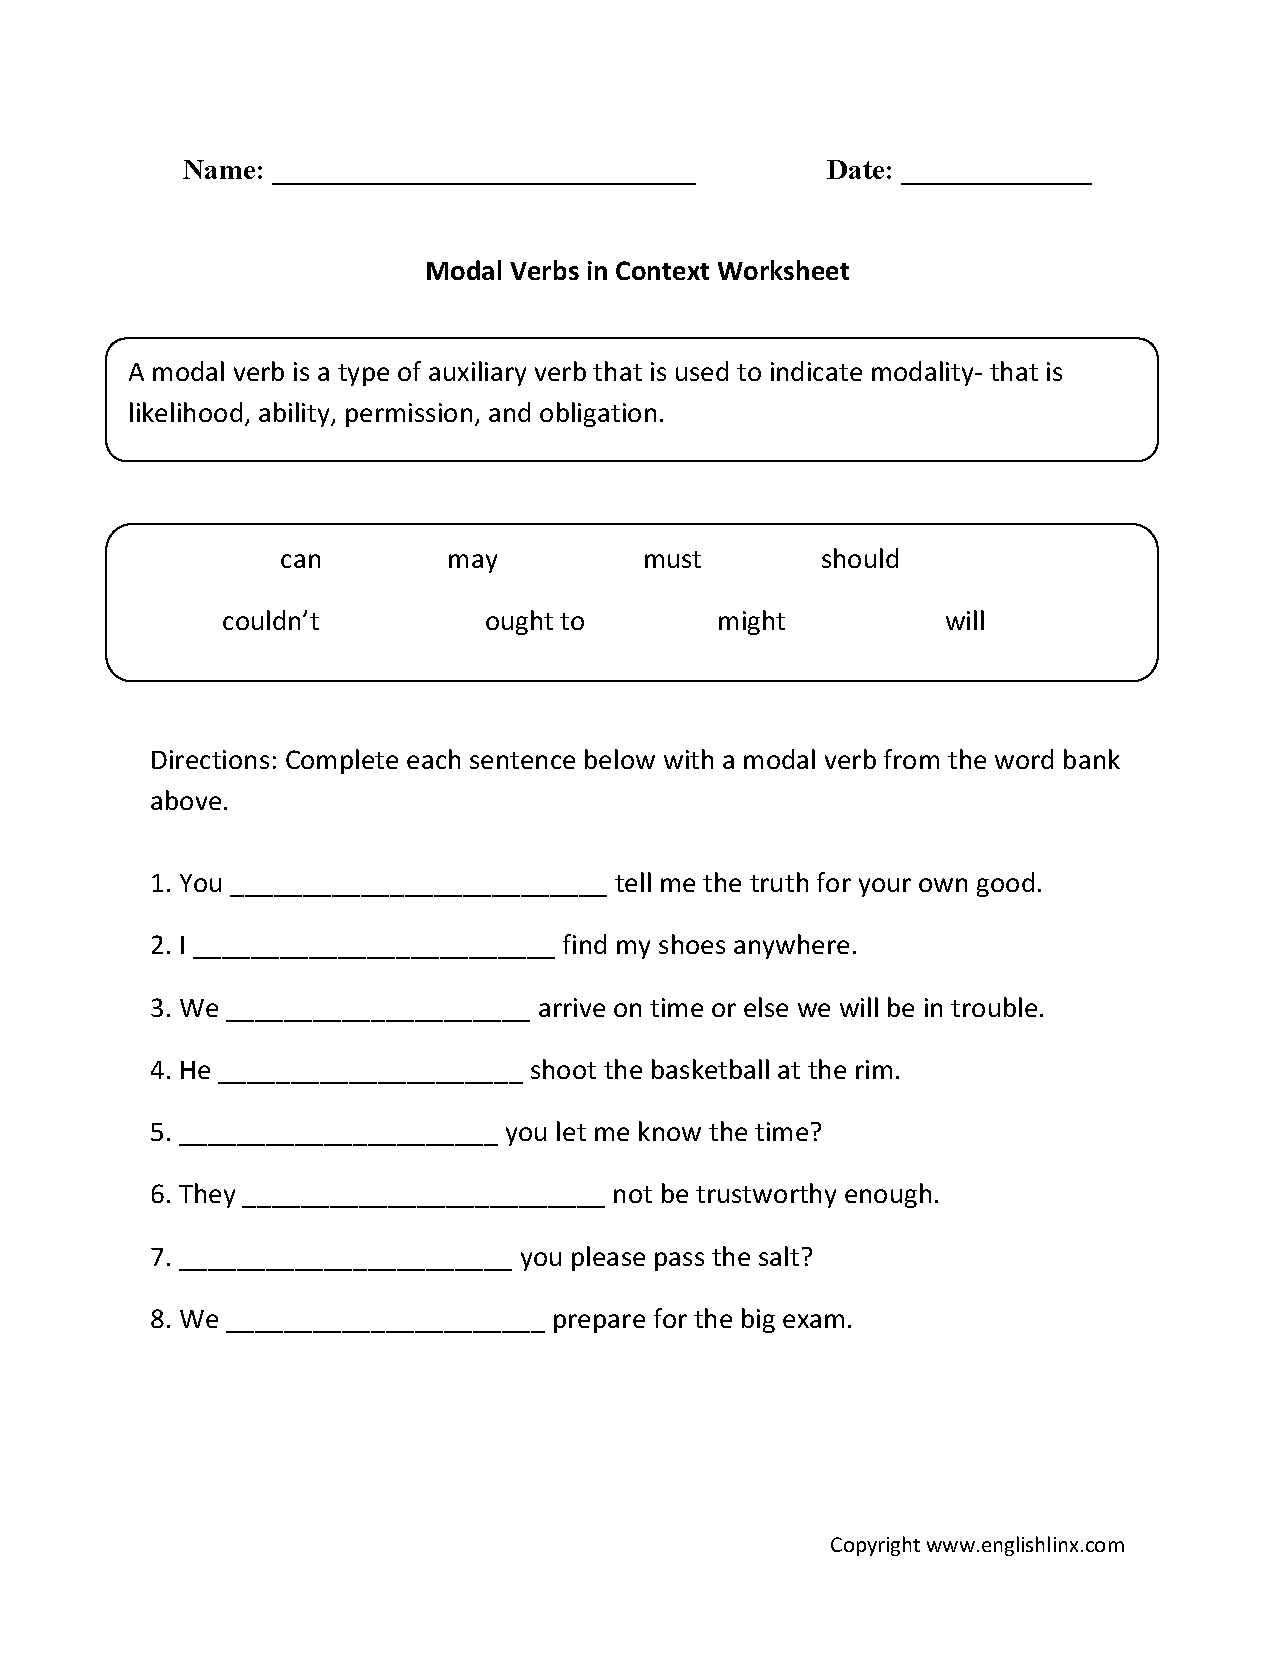 Aldiablosus  Pleasing Worksheet For Verbs  Coffemix With Inspiring Englishlinxcom  Verbs Worksheets With Lovely Area Multiplication Worksheets Also Pythagorean Theorem Word Problems Worksheets With Answers In Addition Algebra  Properties Worksheet And Sight Word Of Worksheet As Well As Free Sight Word Worksheets Printable Additionally Inertia Worksheet Middle School From Coffemixcom With Aldiablosus  Inspiring Worksheet For Verbs  Coffemix With Lovely Englishlinxcom  Verbs Worksheets And Pleasing Area Multiplication Worksheets Also Pythagorean Theorem Word Problems Worksheets With Answers In Addition Algebra  Properties Worksheet From Coffemixcom